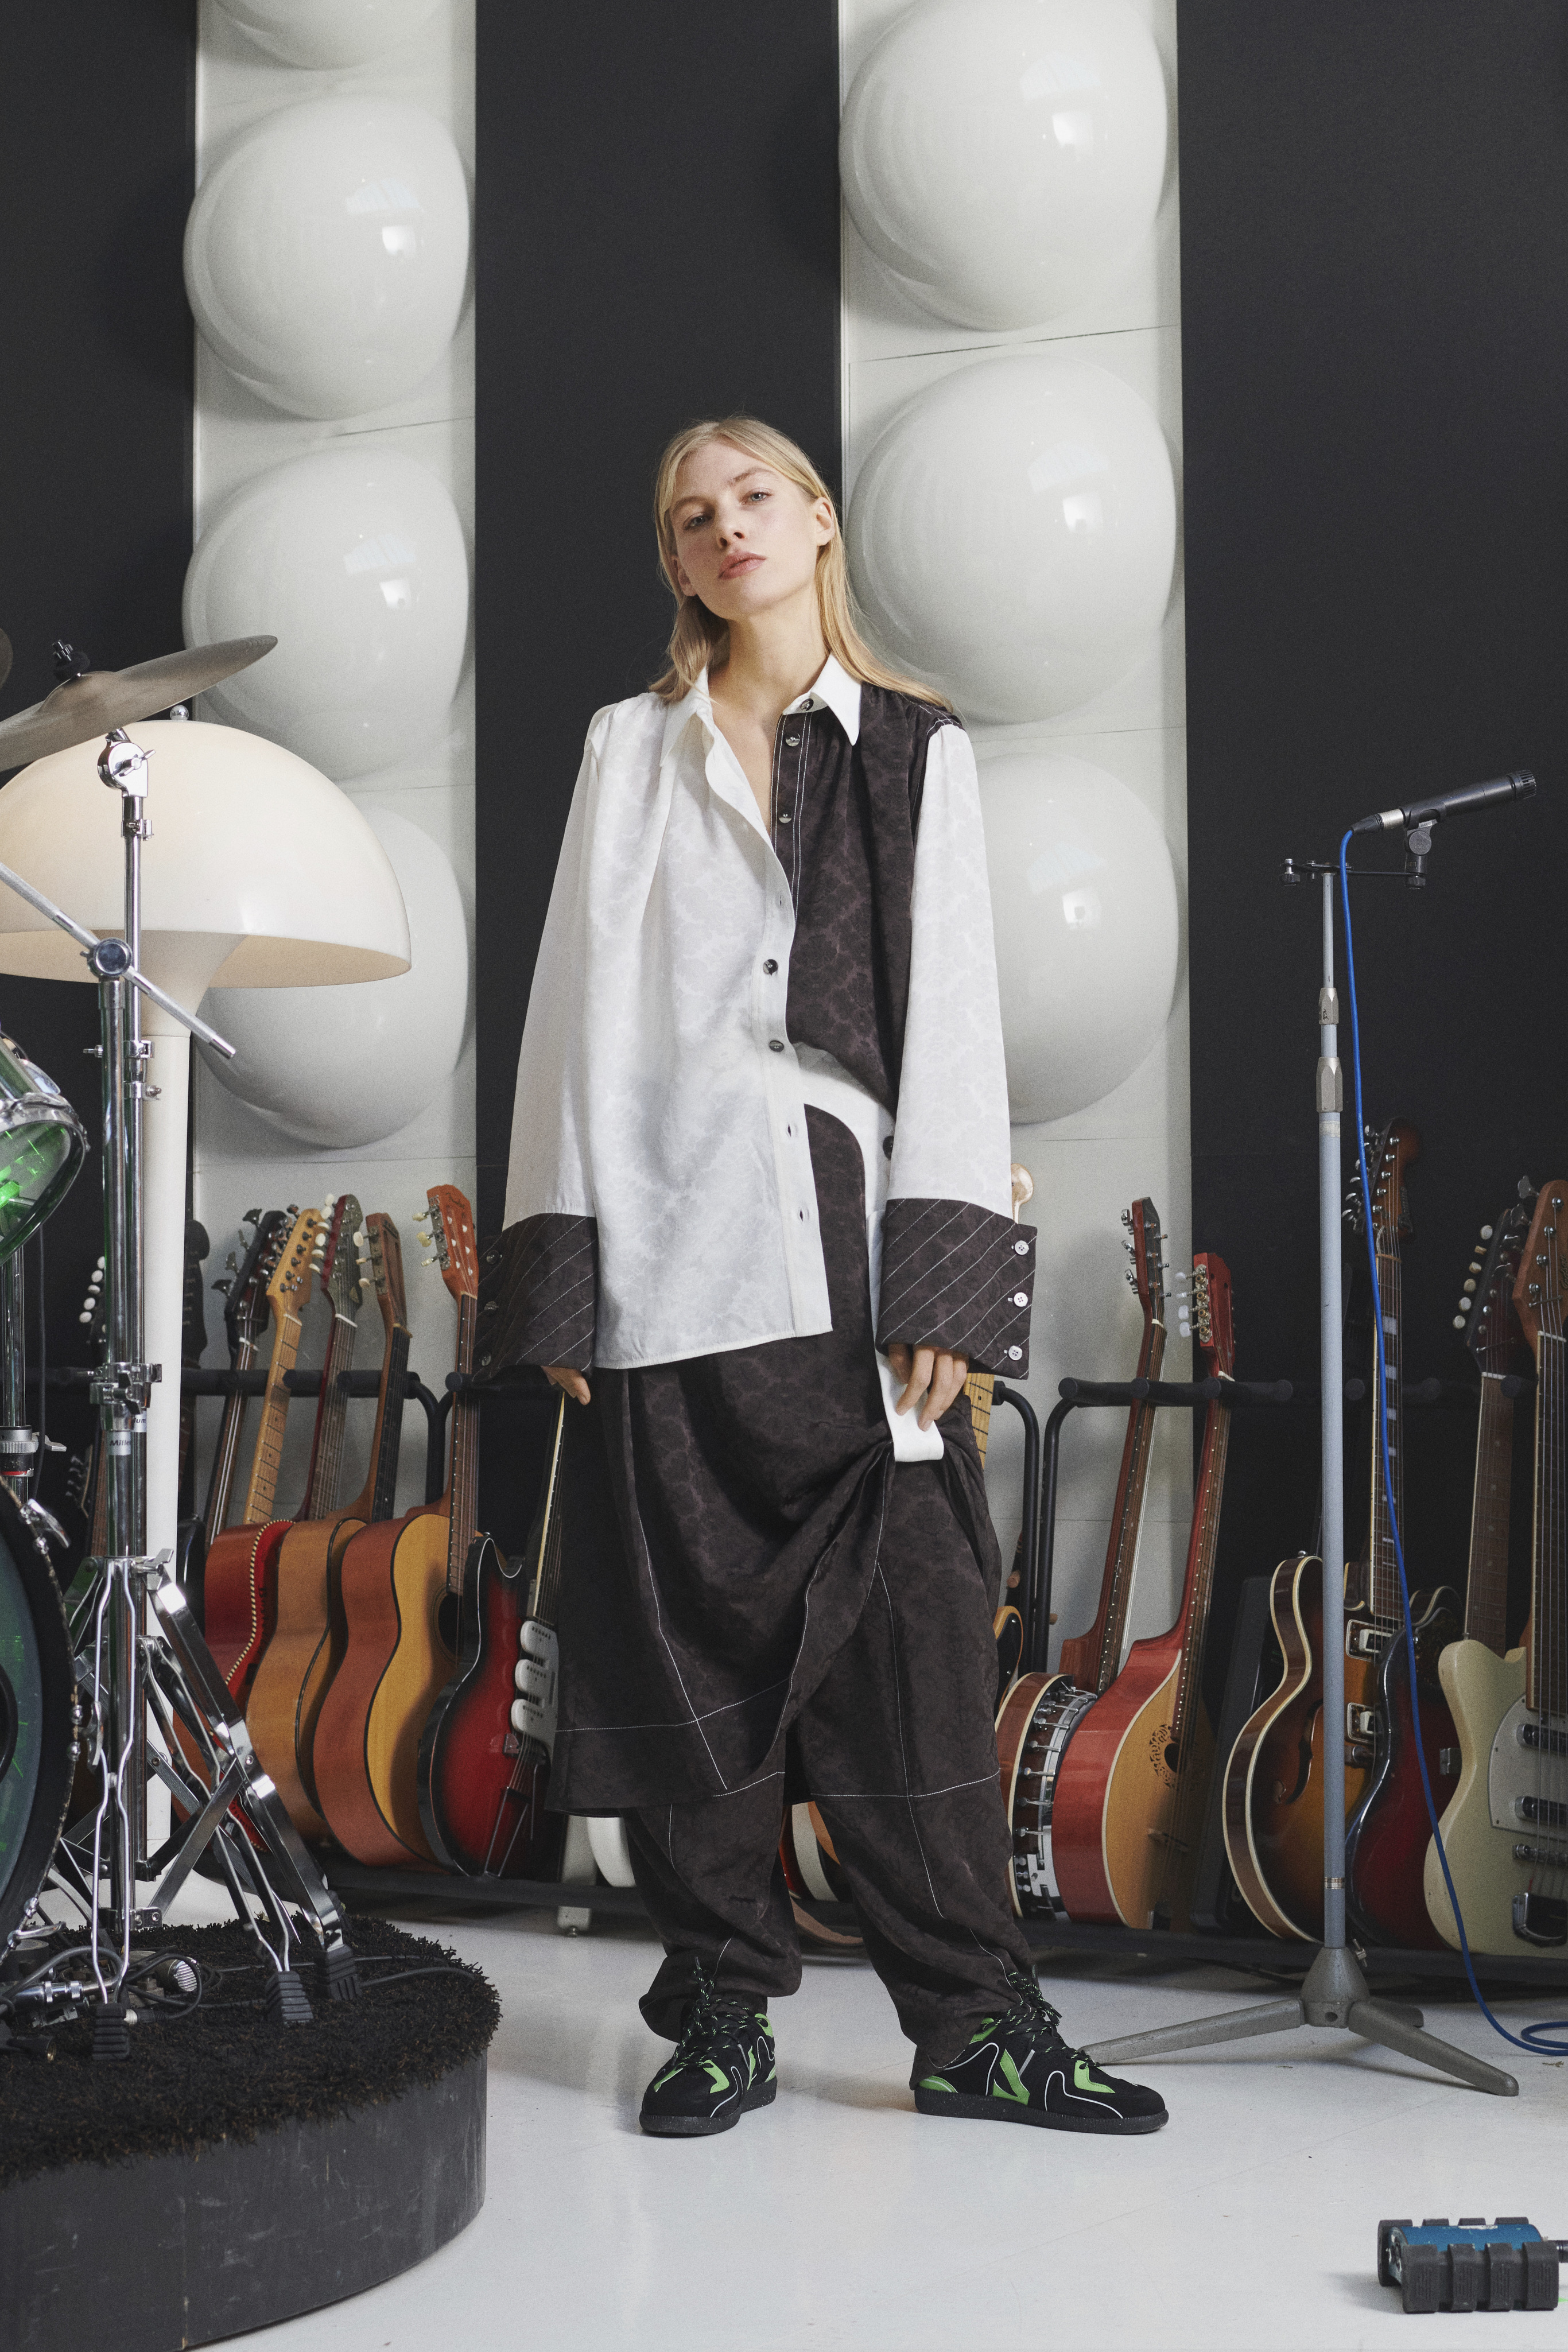 Music And Fashion Meet For A Joy-Filled Ganni Show In Copenhagen